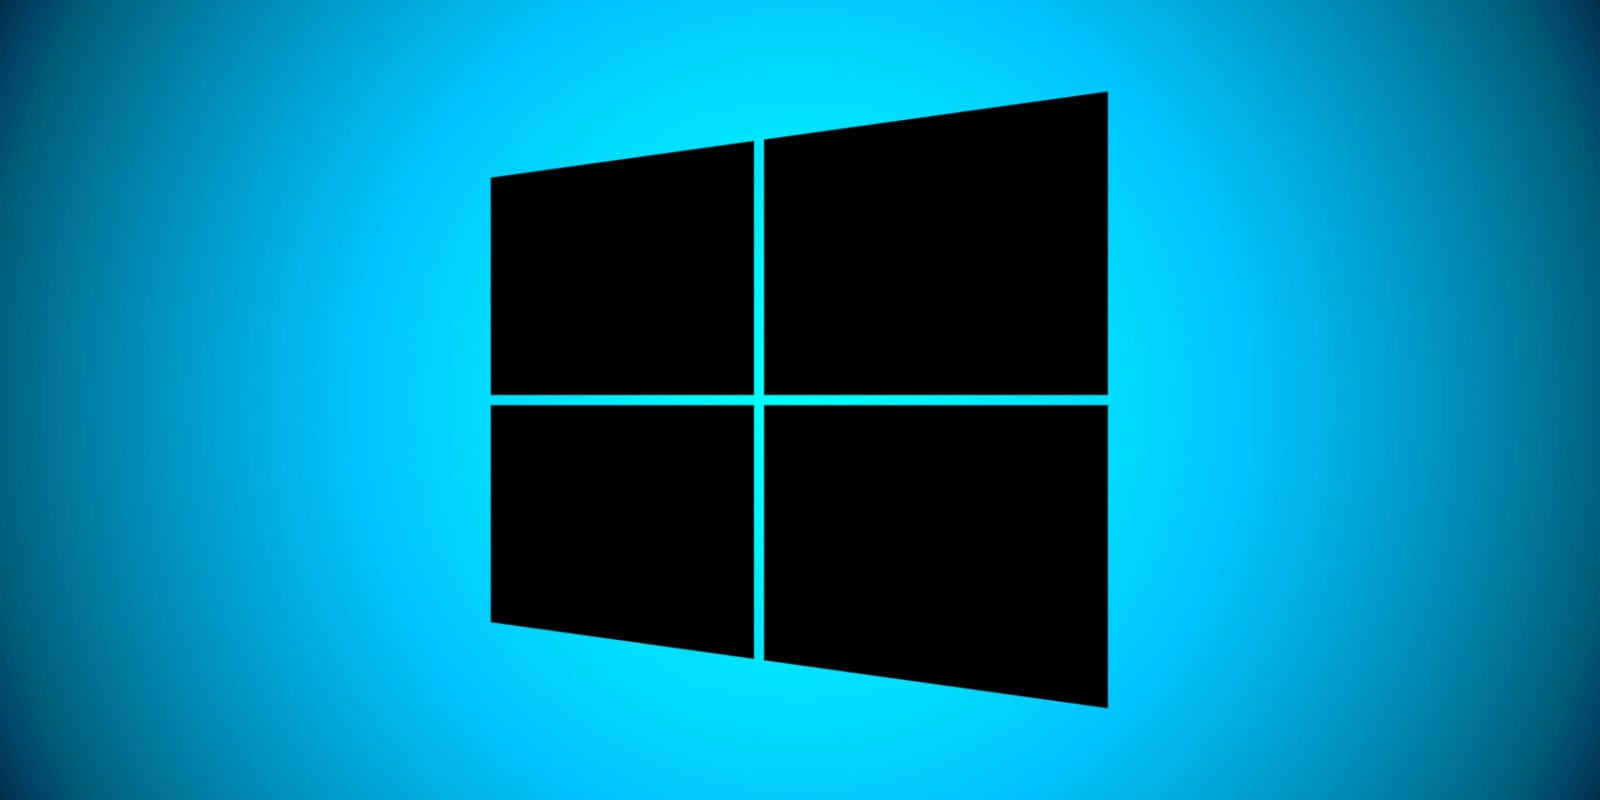 The 7 Best Windows 10 Dark Themes for Your Eyes | The Better